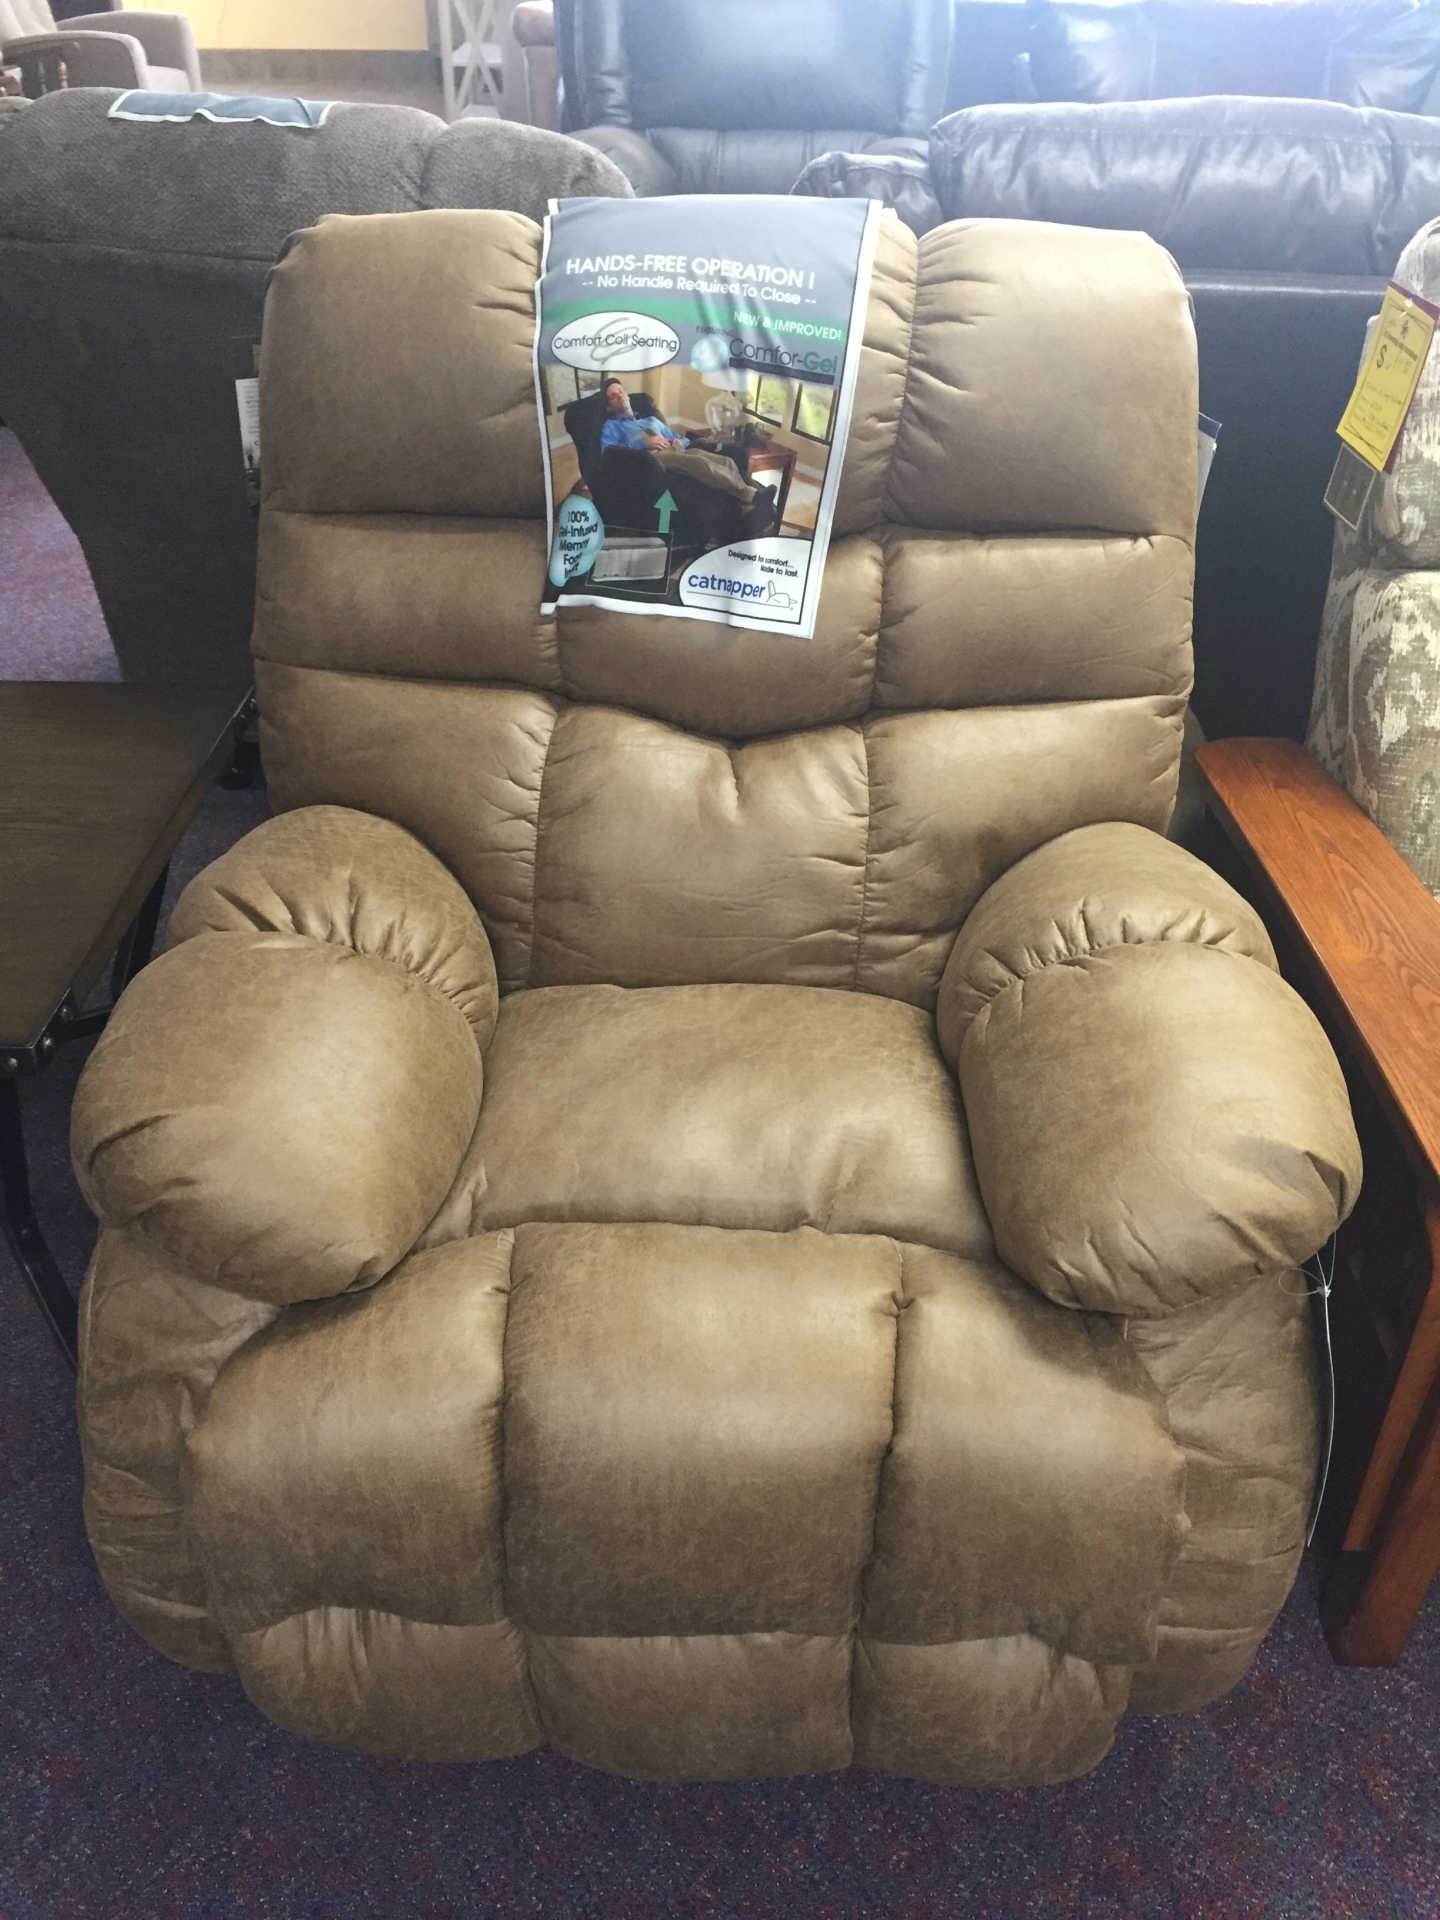 Catnapper Berman rocker/recliner- $599.95